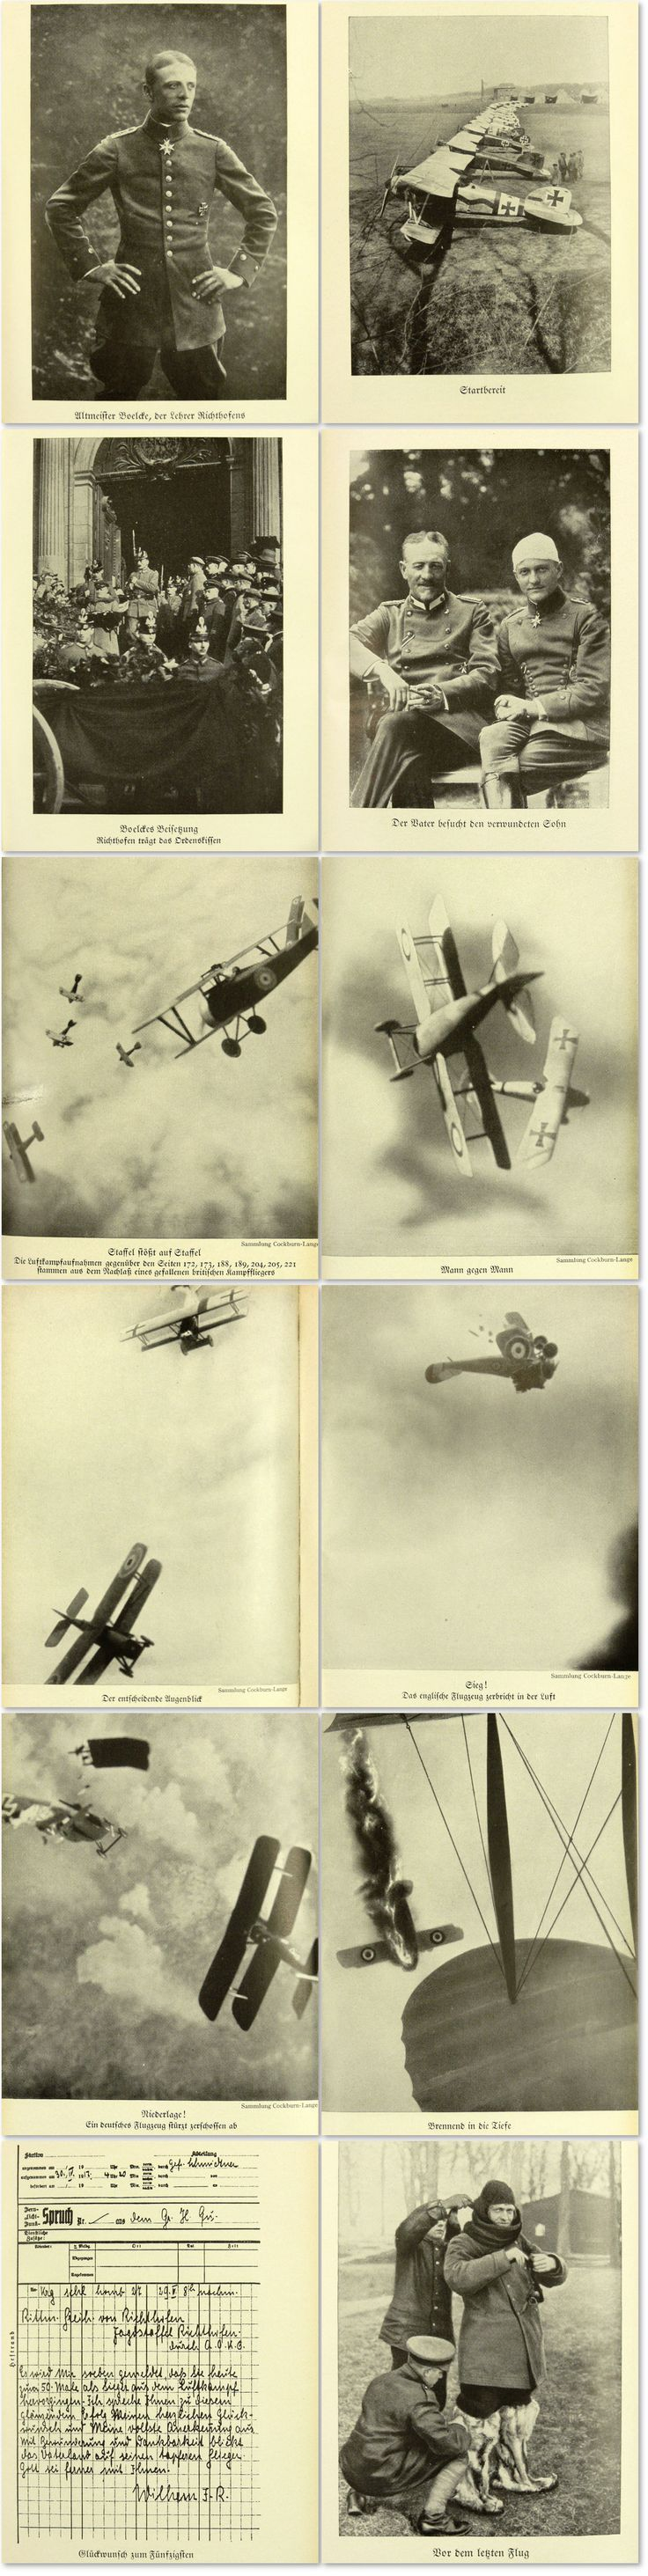 Von Richthofen - The Red Fighter Pilot Rare military aviation book about the famous WWI Fighter Pilot ace Baron Manfred von Richthofen,also known as the 'Red Baron' (Der Rote Baron)...